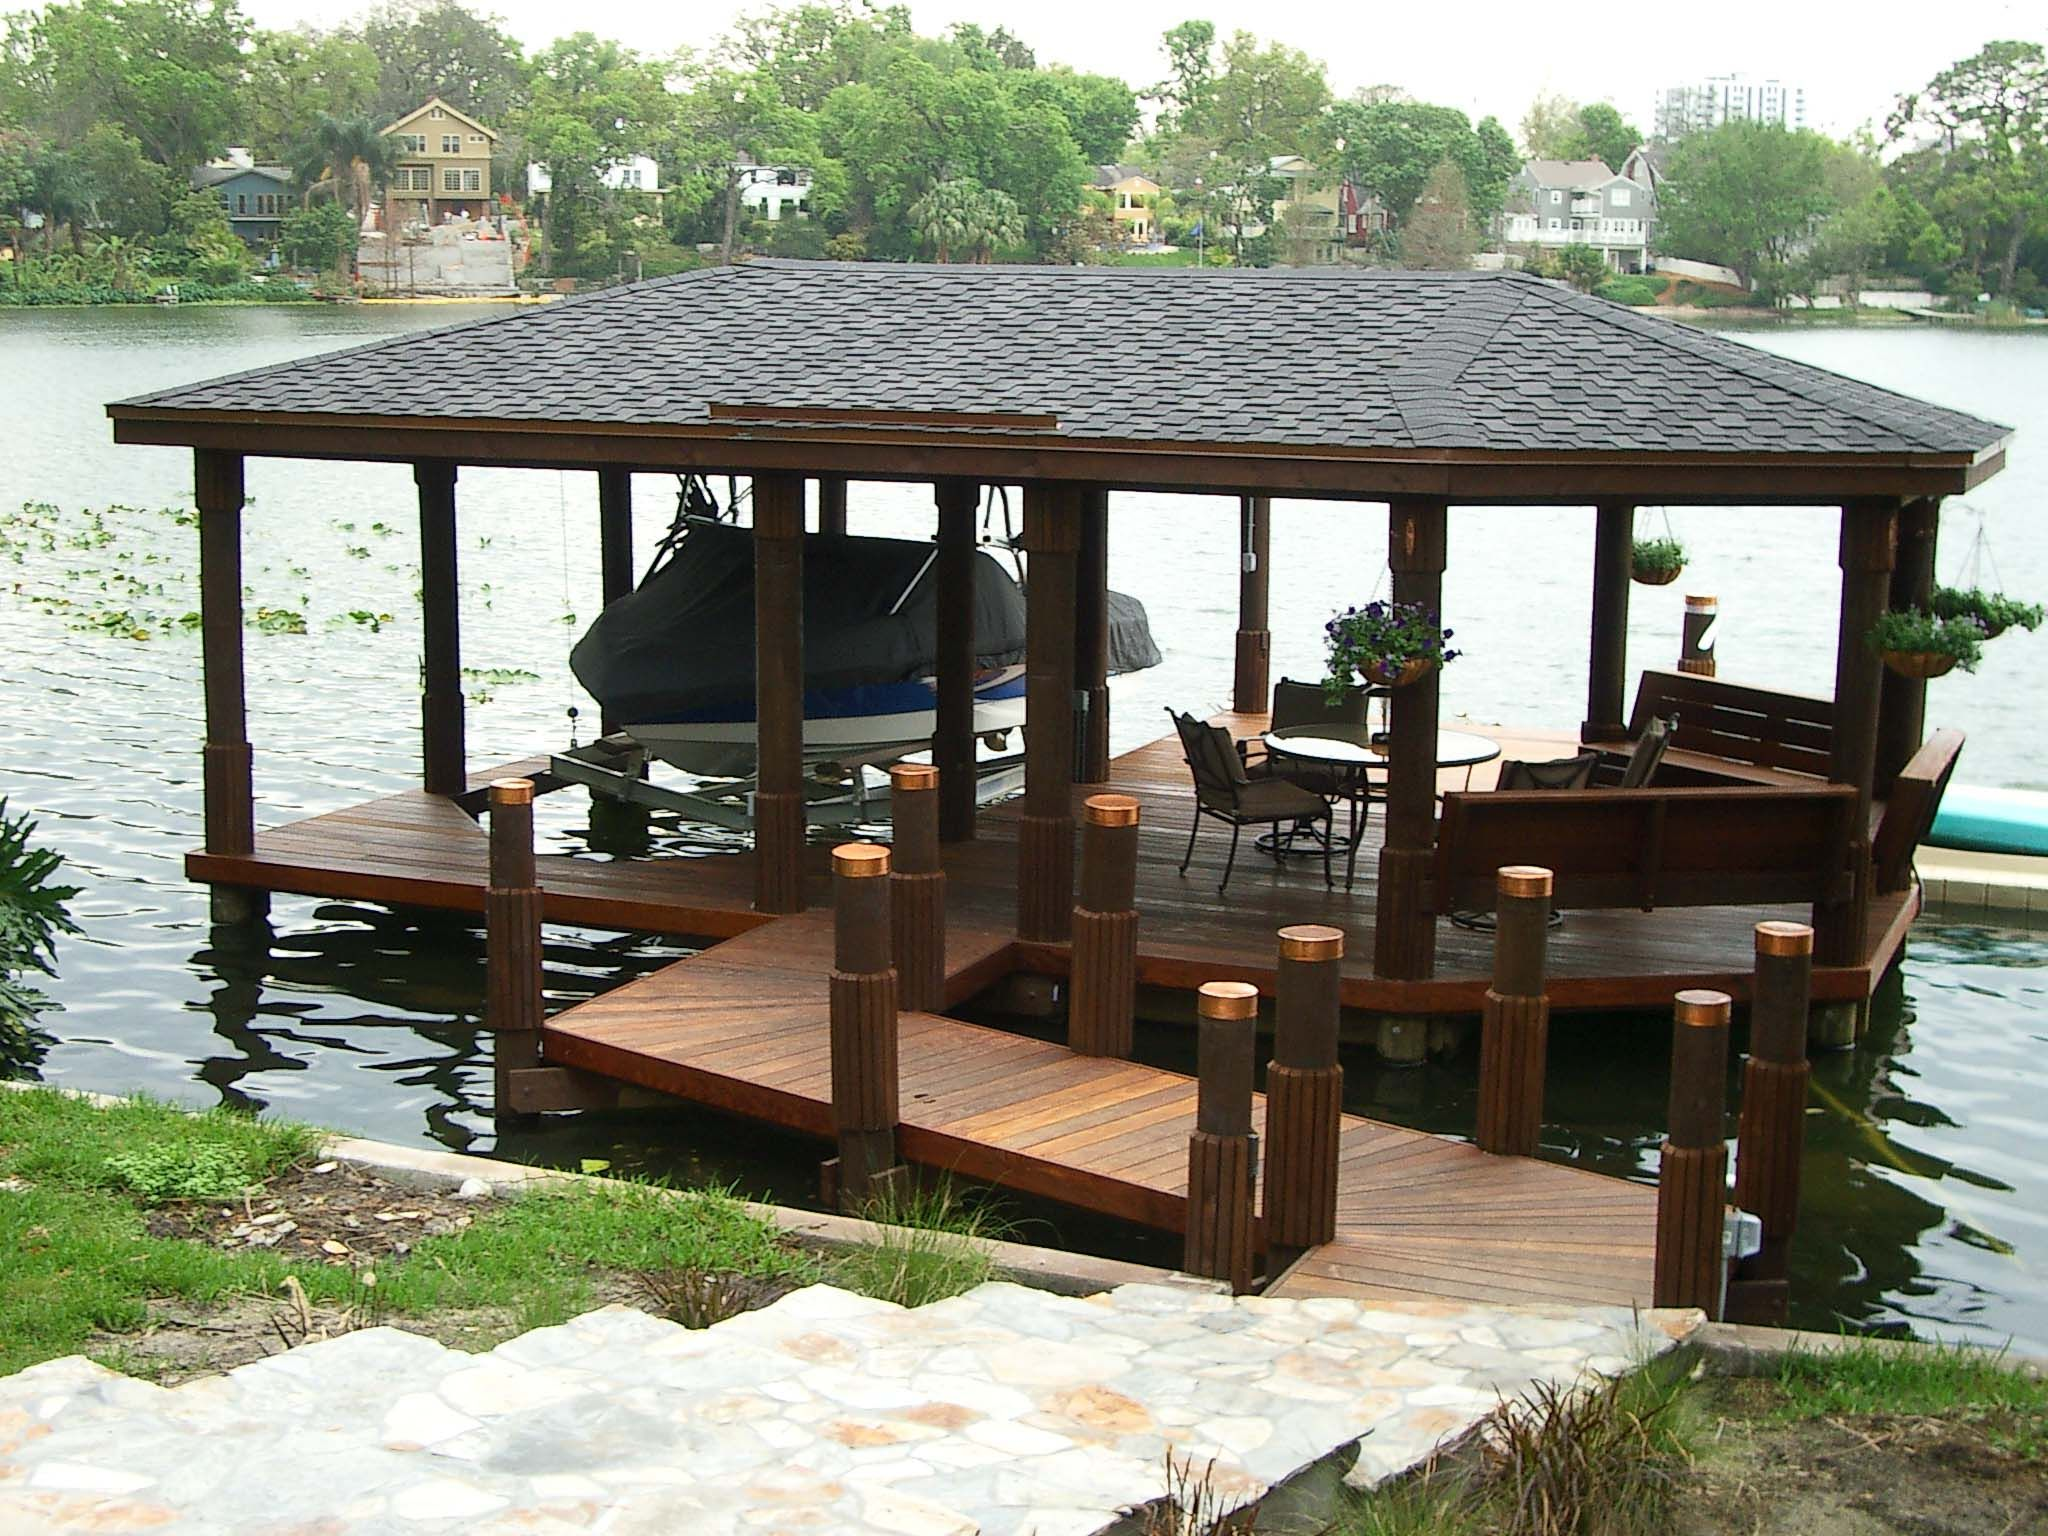 Small boat house docks google search home improvements for Boat house designs plans